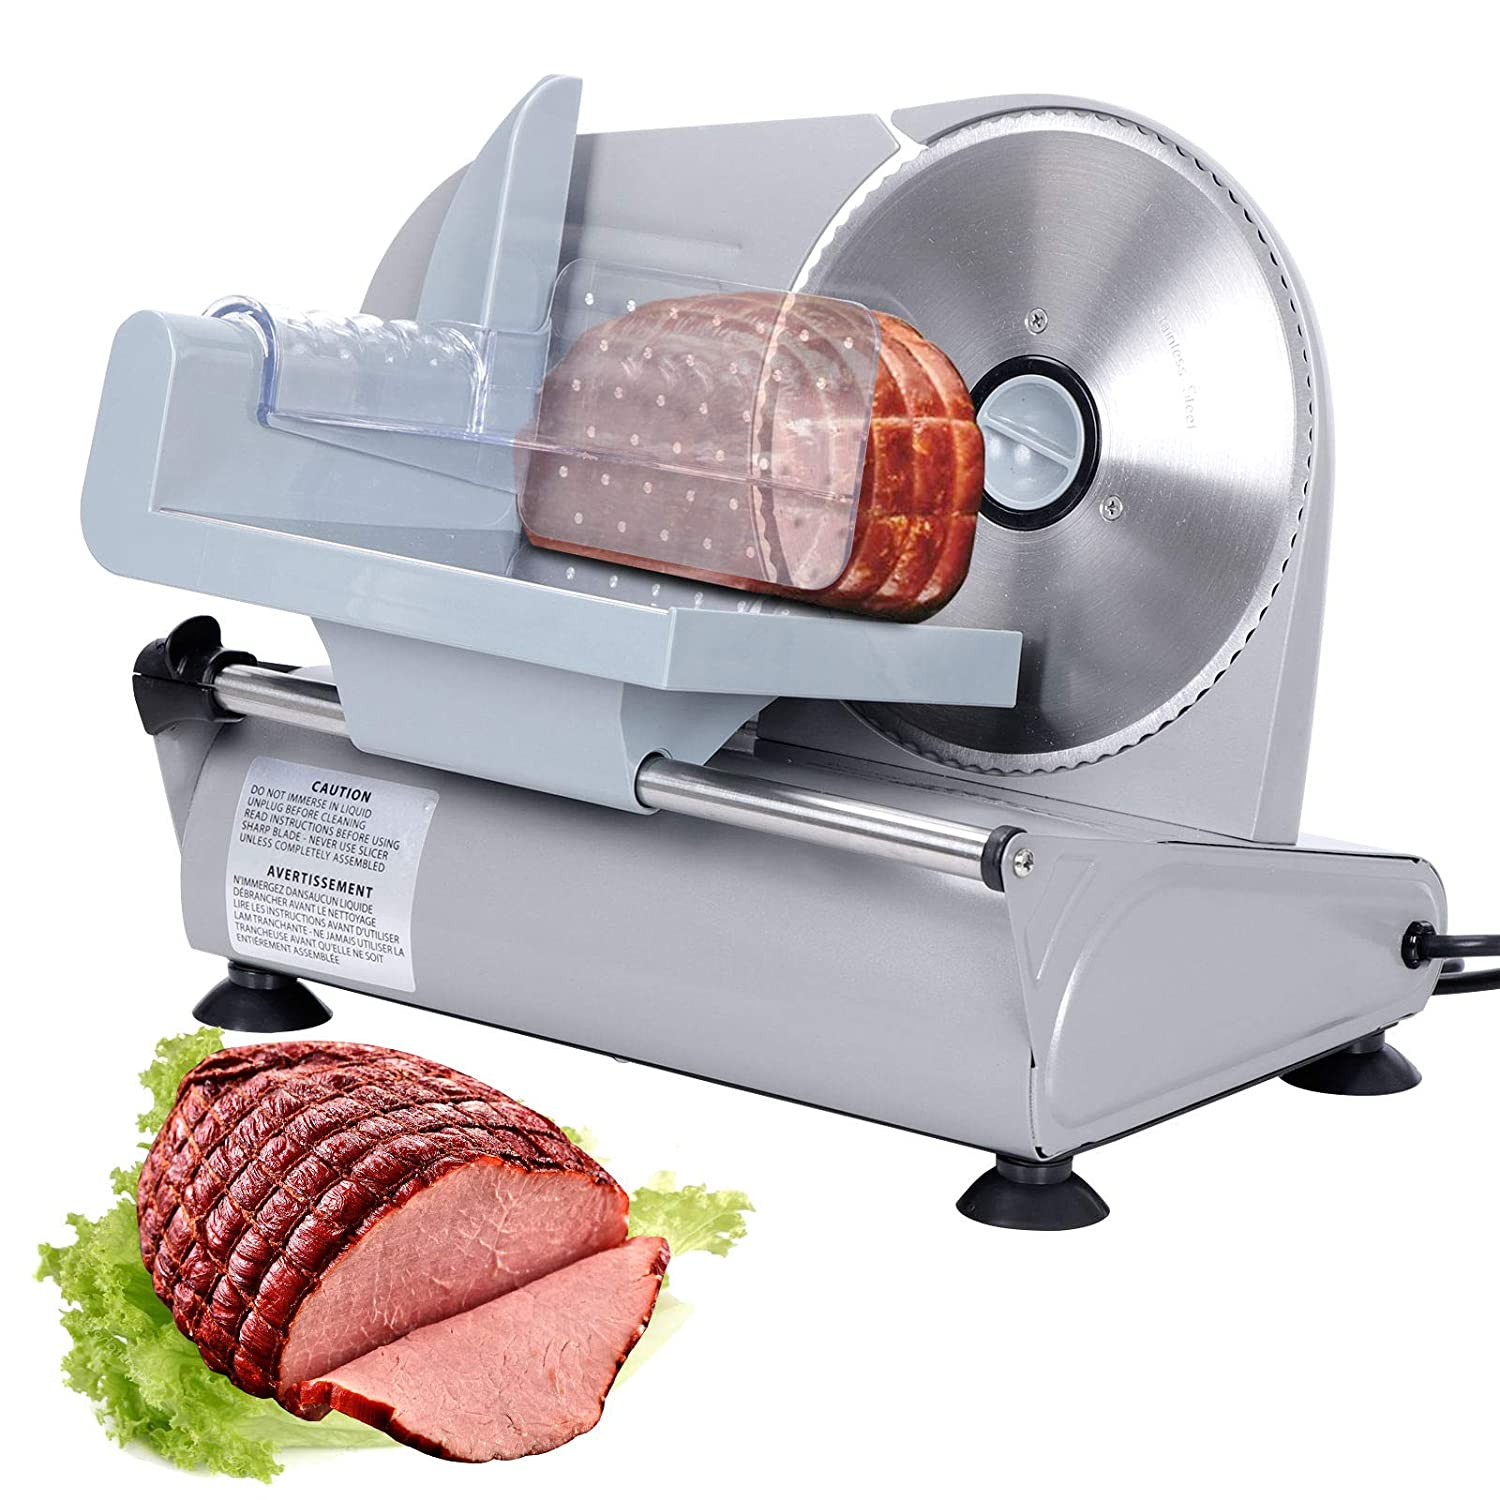 Best Meat Slicer Reviews 2019: Top 5+ Recommended 5 #cookymom